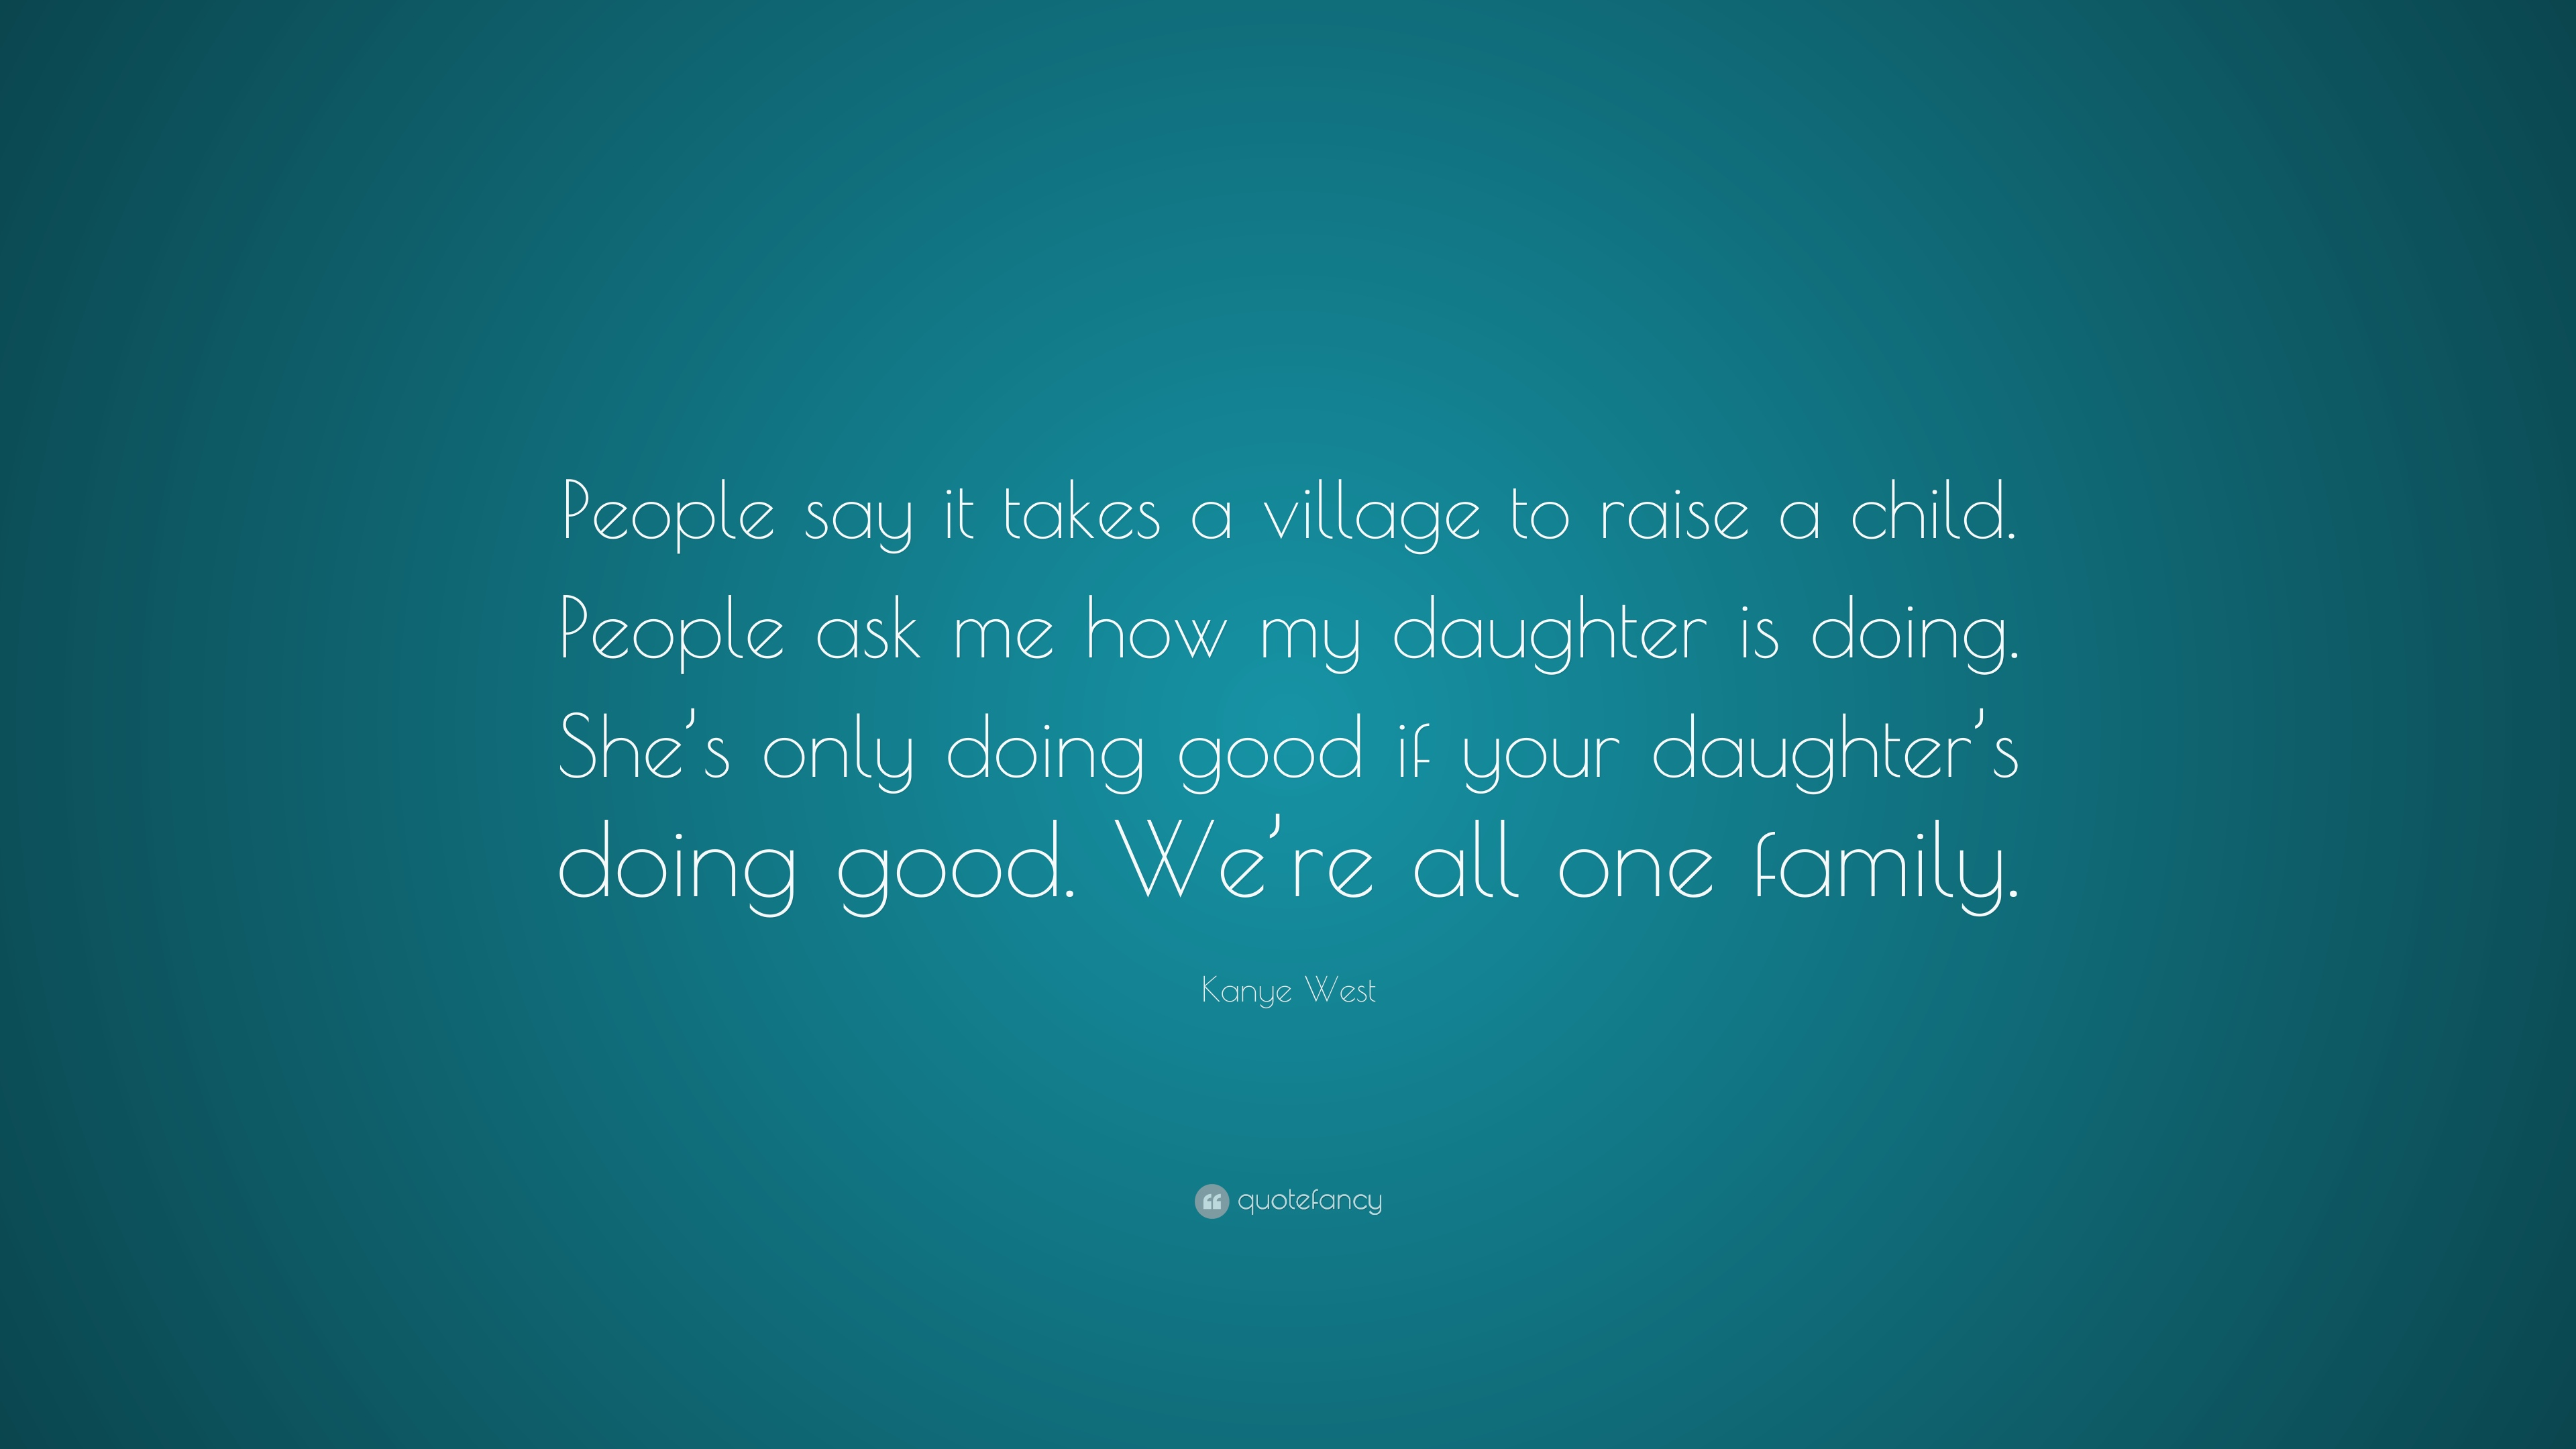 Kanye West Quote People Say It Takes A Village To Raise A Child